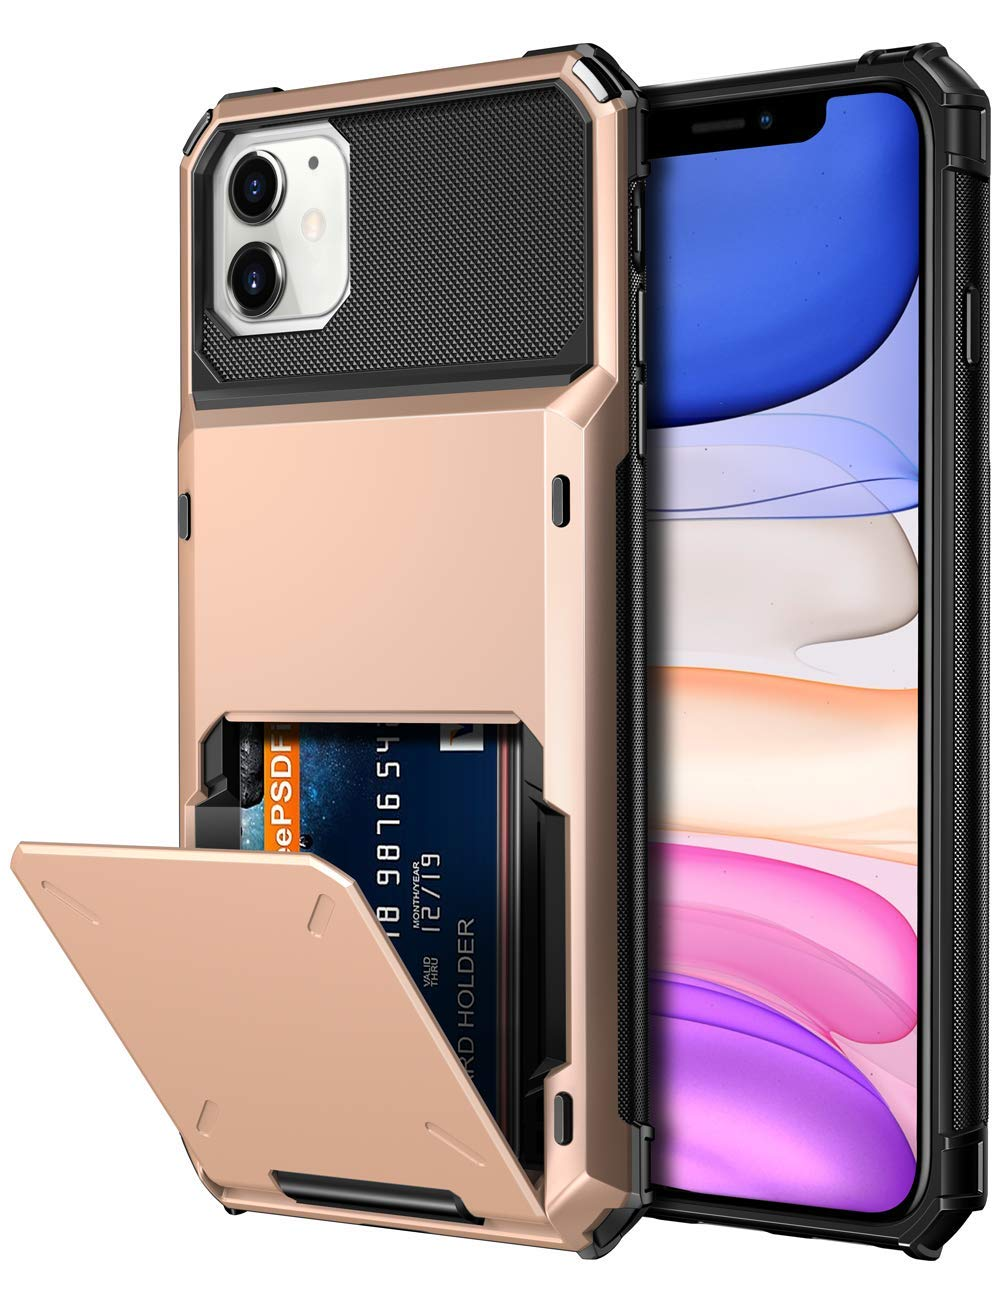 Vofolen Case for iPhone 11 Case Wallet 4-Card Holder ID Slot Flip Door Hidden Pocket Anti-Scratch Dual Layer Hybrid TPU Bumper Armor Protective Hard Shell Back Cover for iPhone 11 6.1 inch Rose Gold